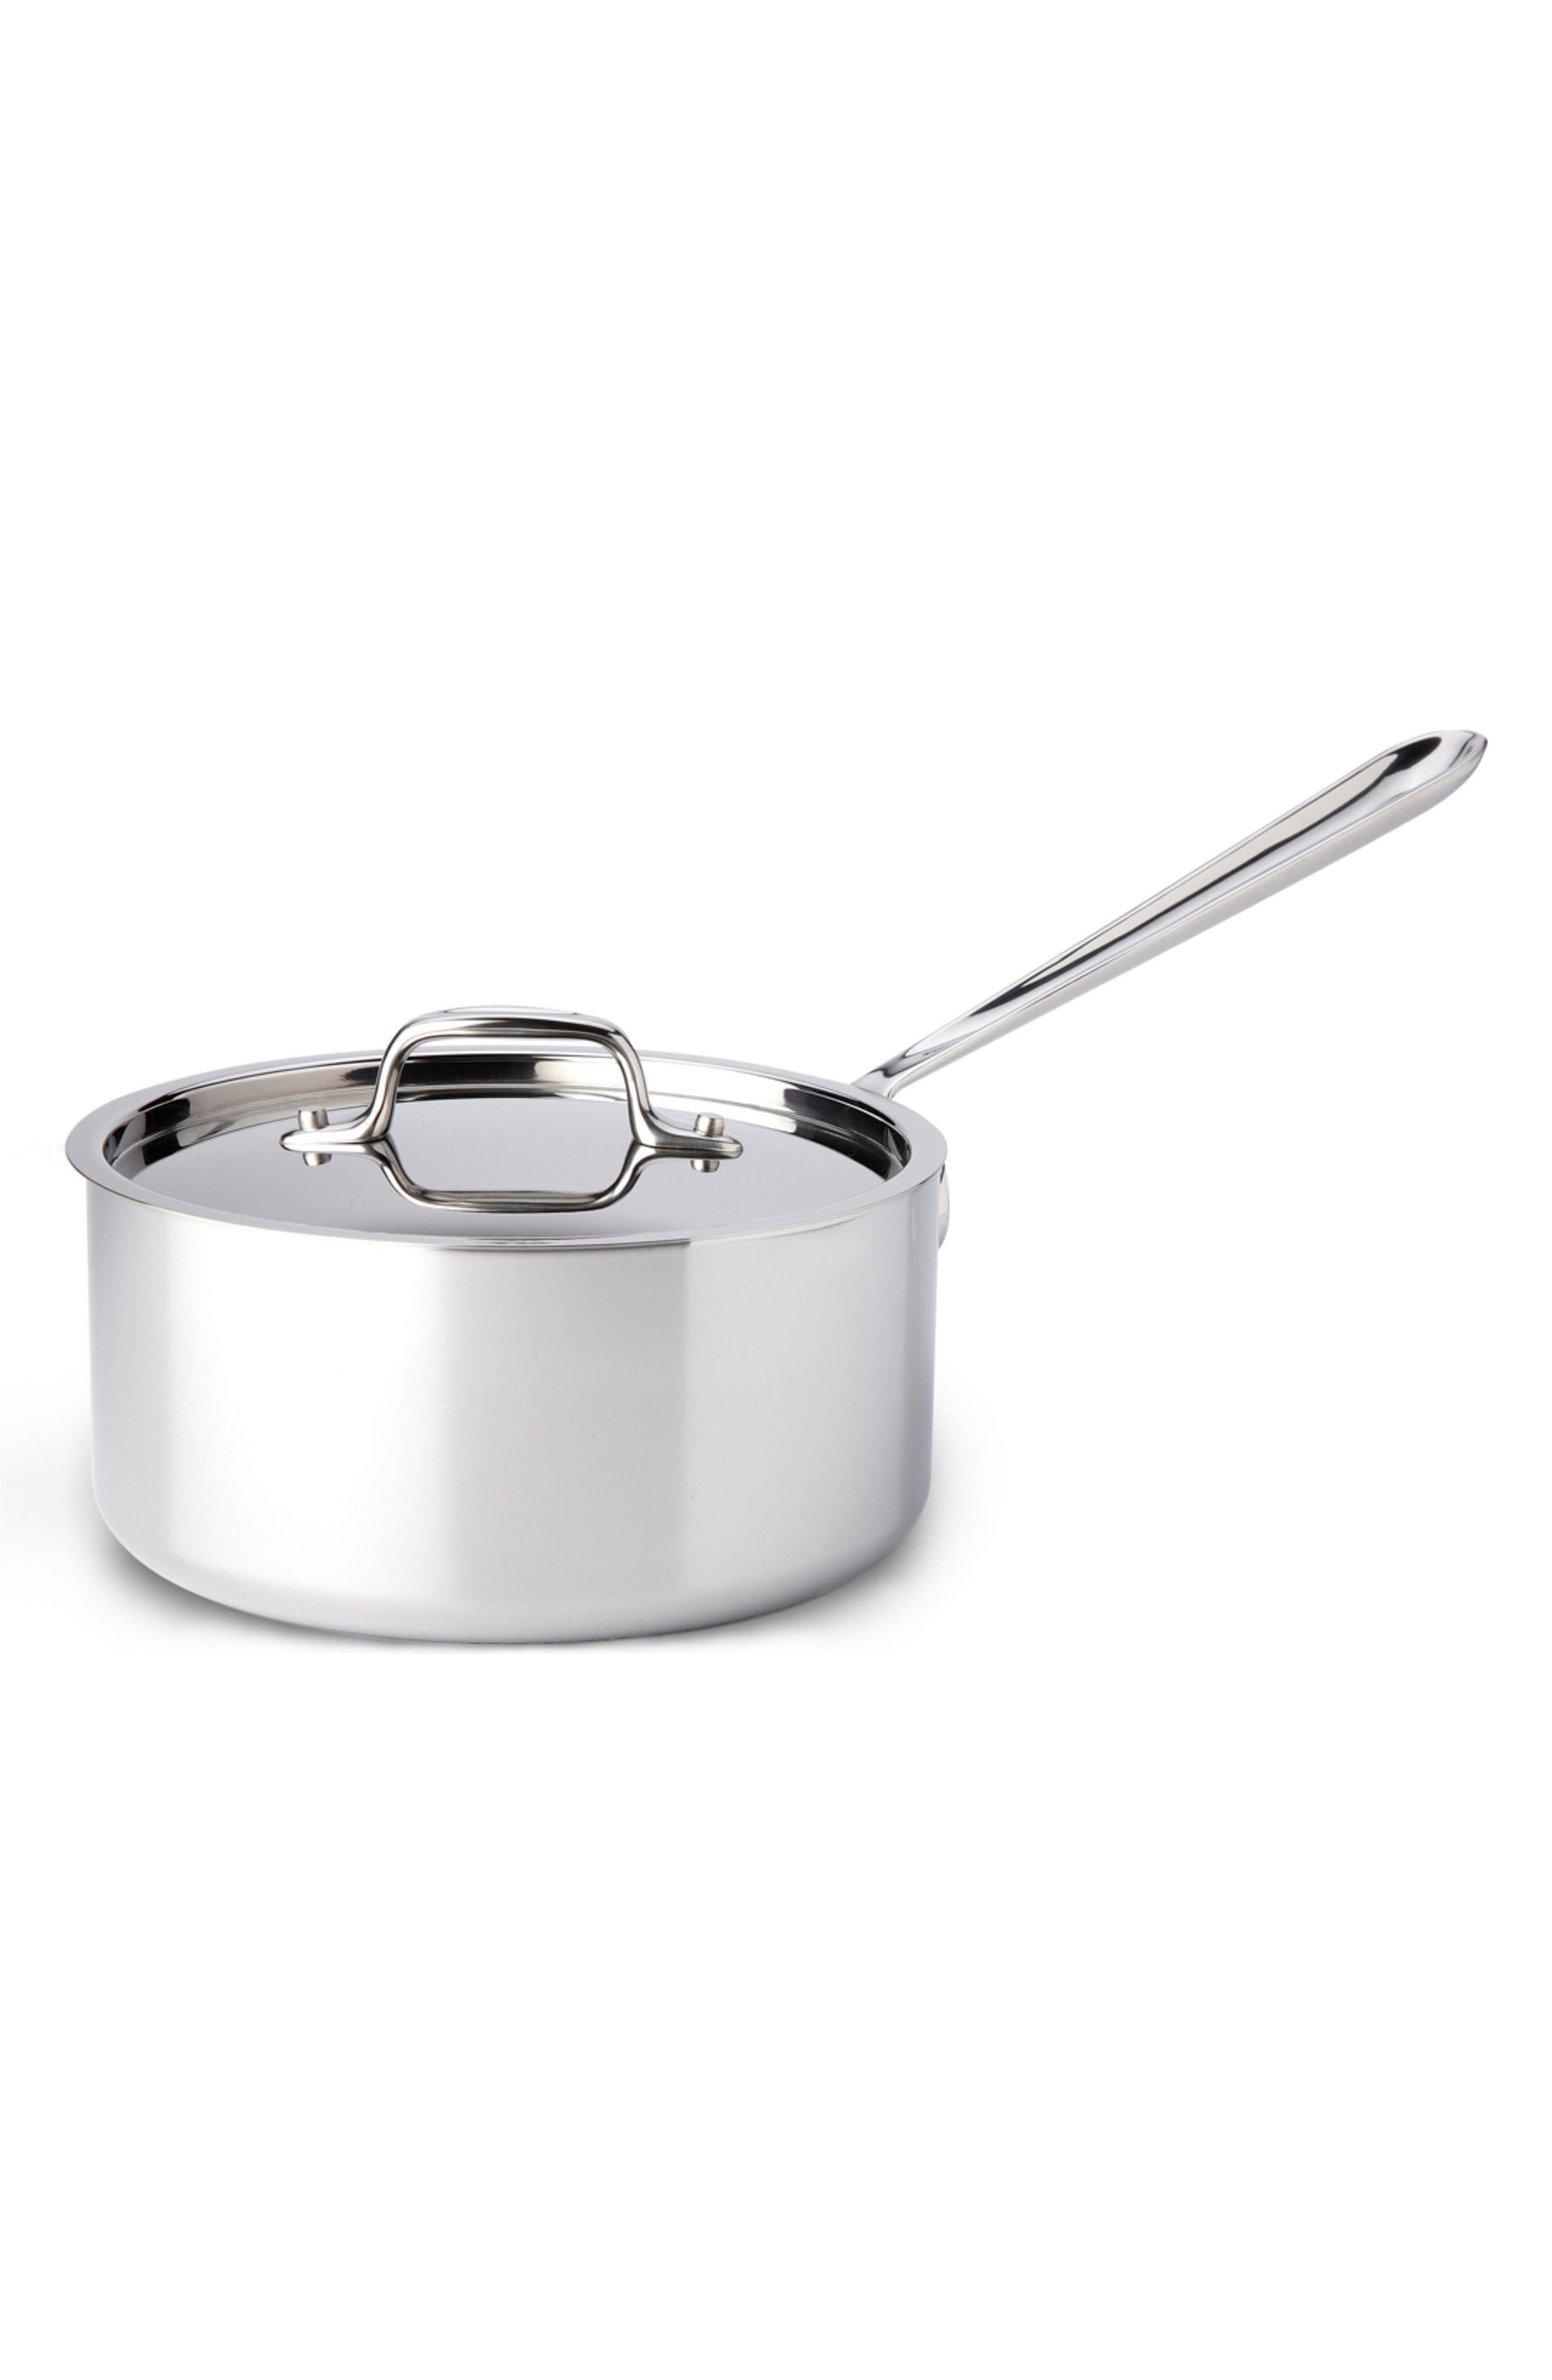 D3 3-Quart Stainless Steel Sauce Pan,                             Main thumbnail 1, color,                             STAINLESS